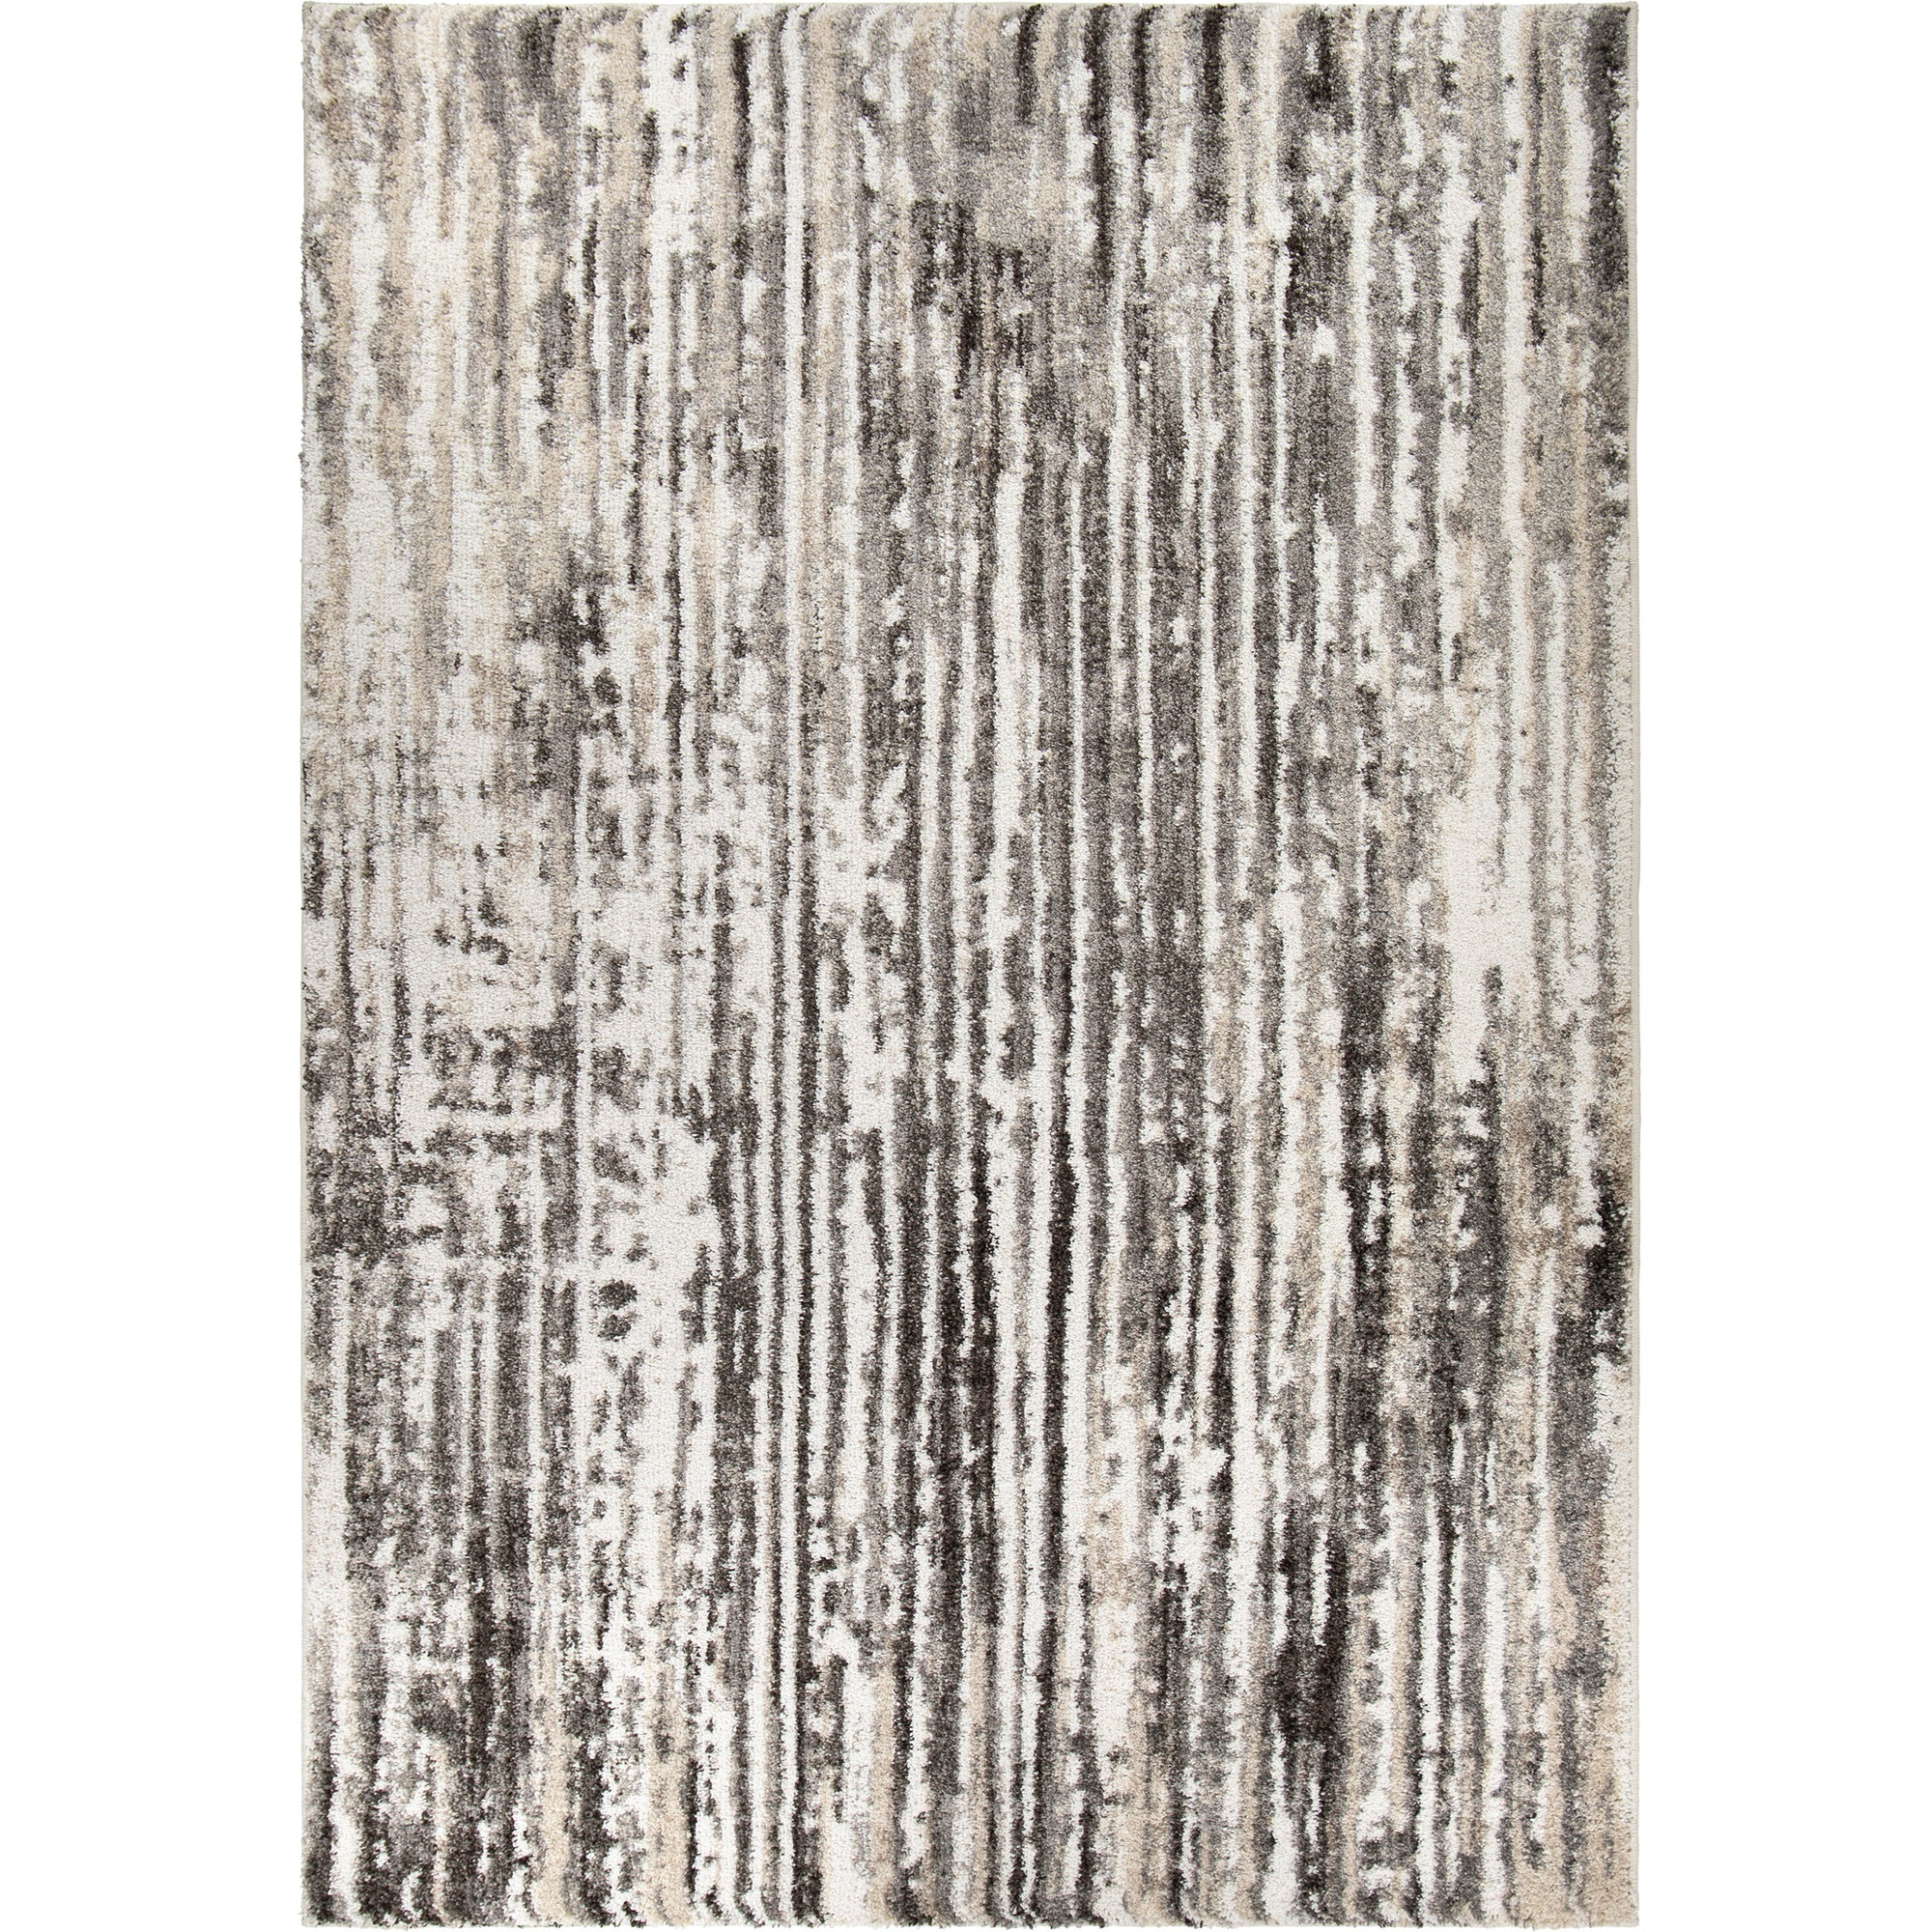 "Palmetto Living Mystical Birchtree   Natural Area Rug - 7'10"" x 10'10"""